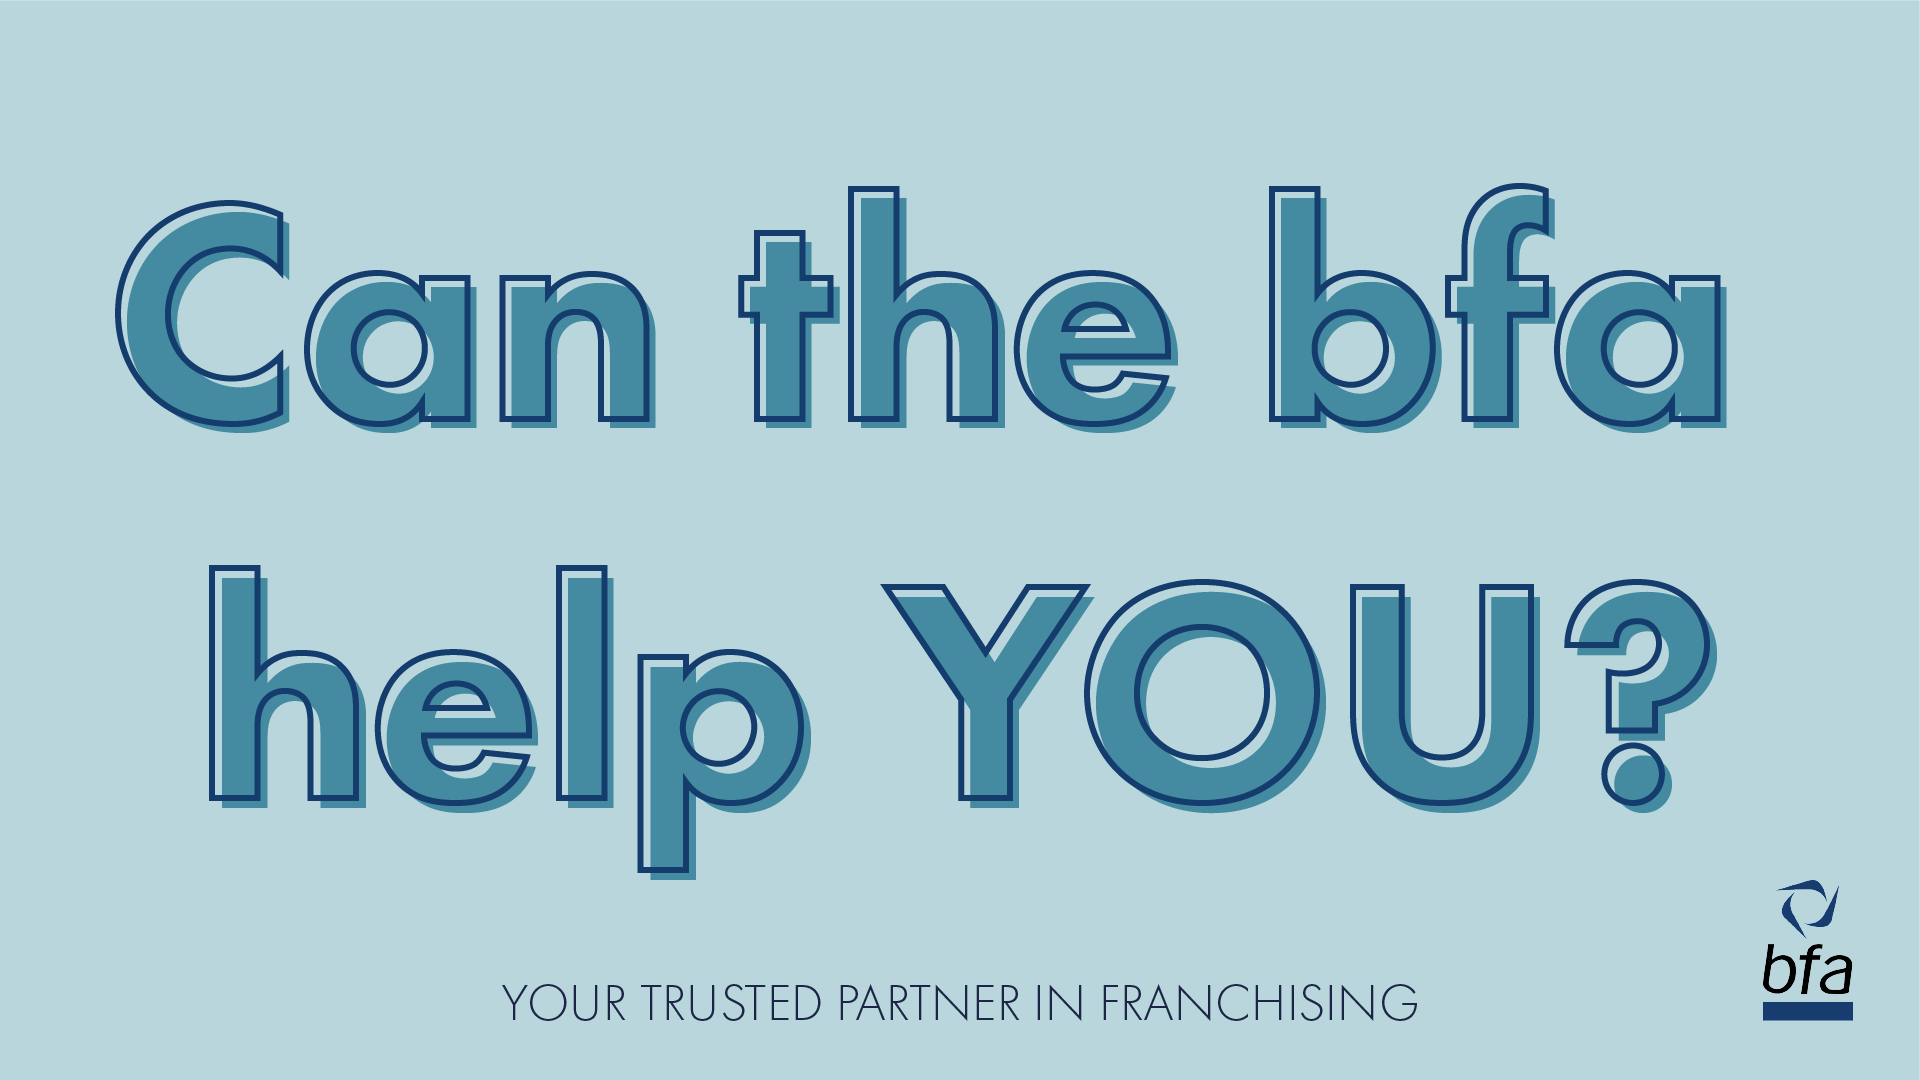 Are you using the bfa to help you recruit?